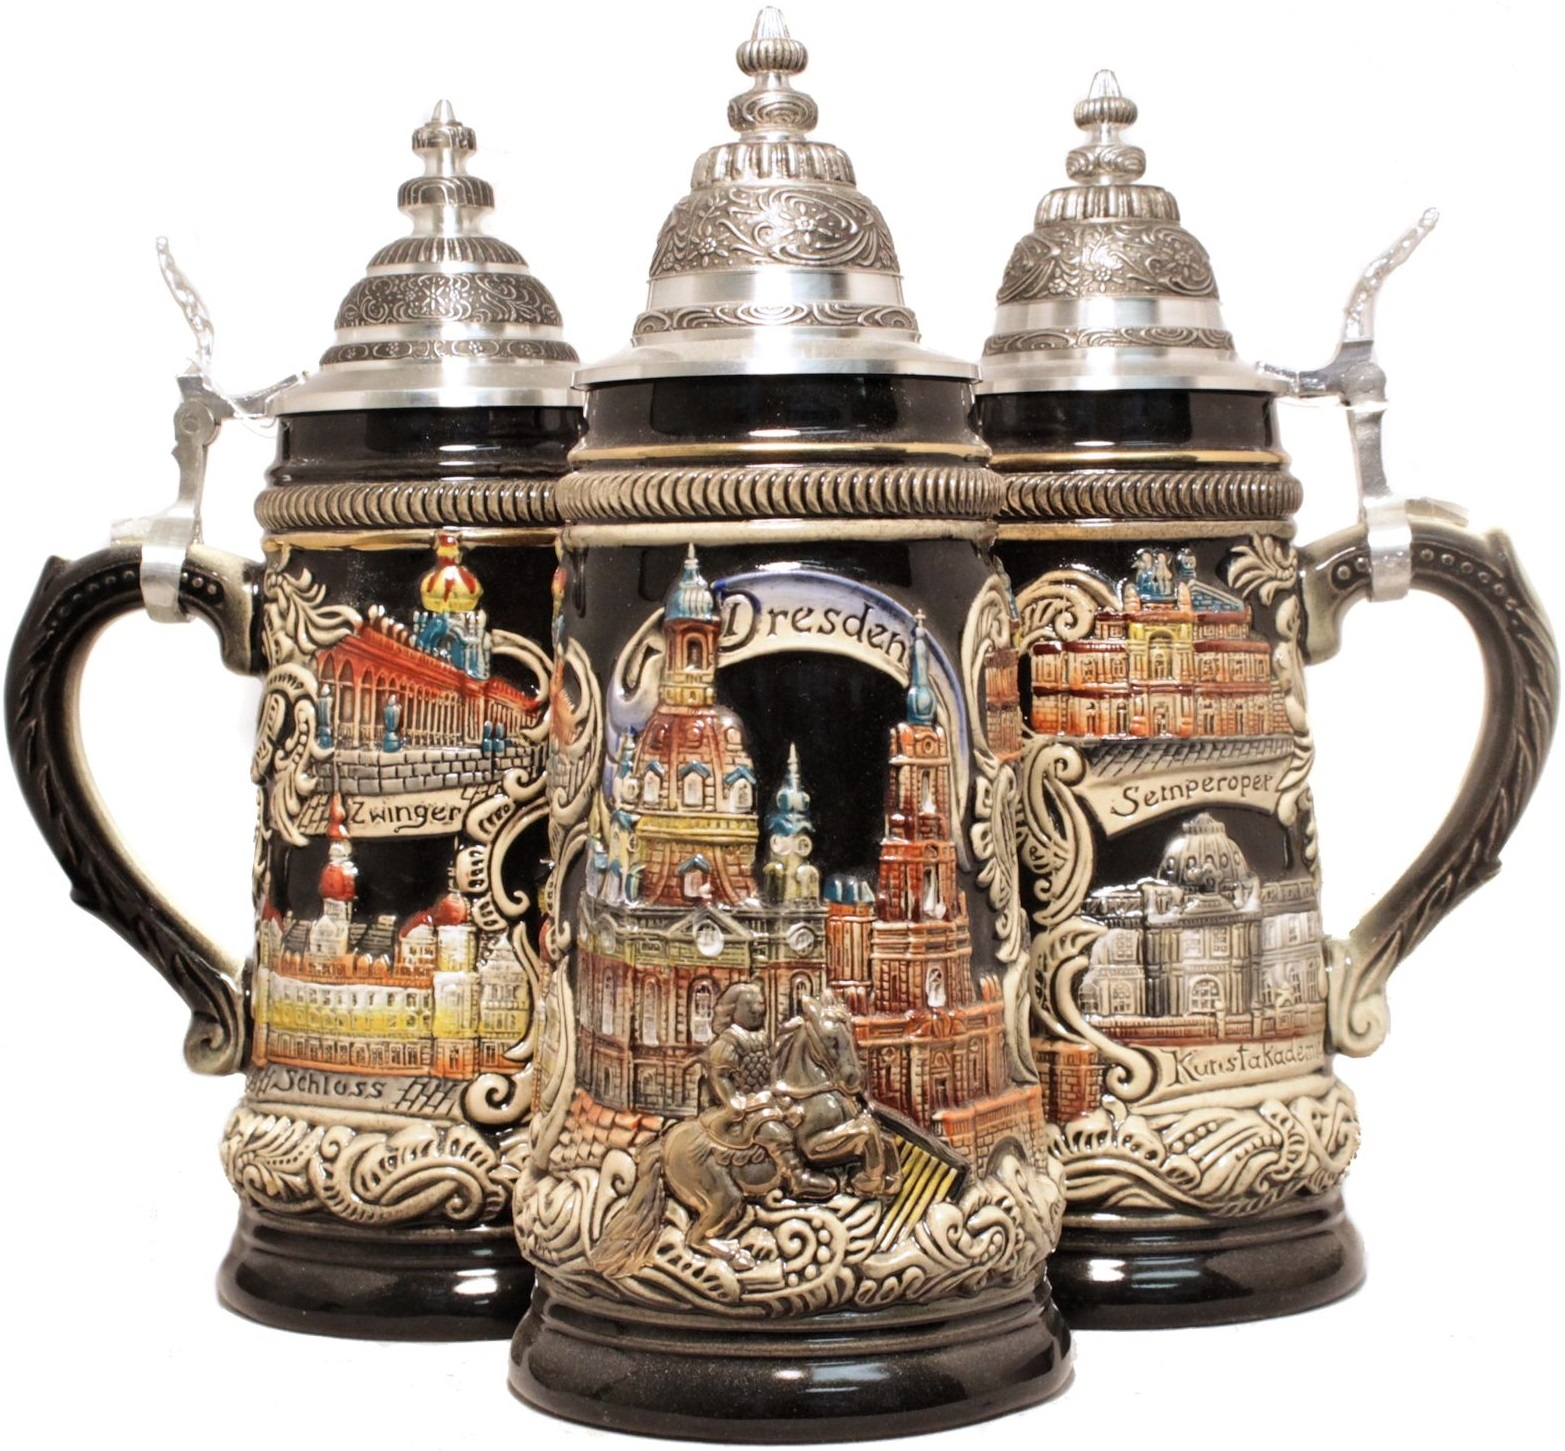 Panorama dresden german beer stein 75l authentic beer for Raumgestaltung stein dresden